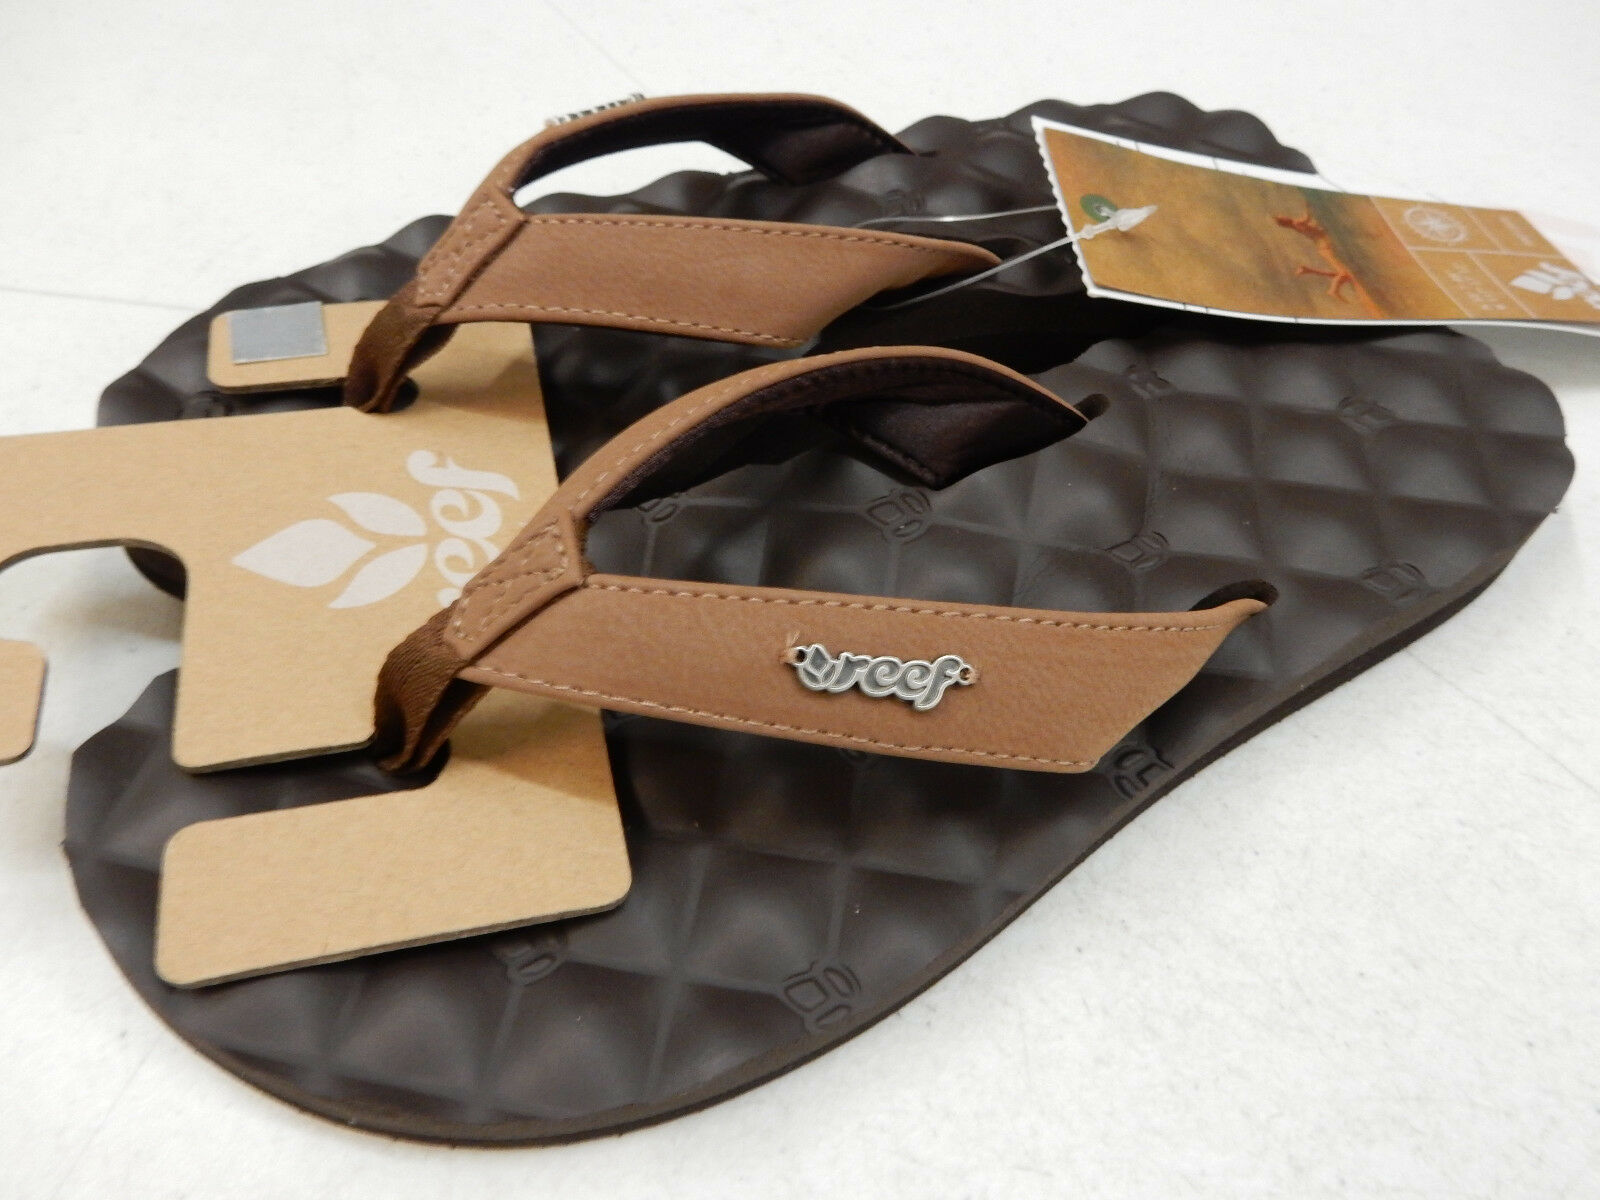 REEF WOMENS SANDALS DREAMS BROWN SIZE 5